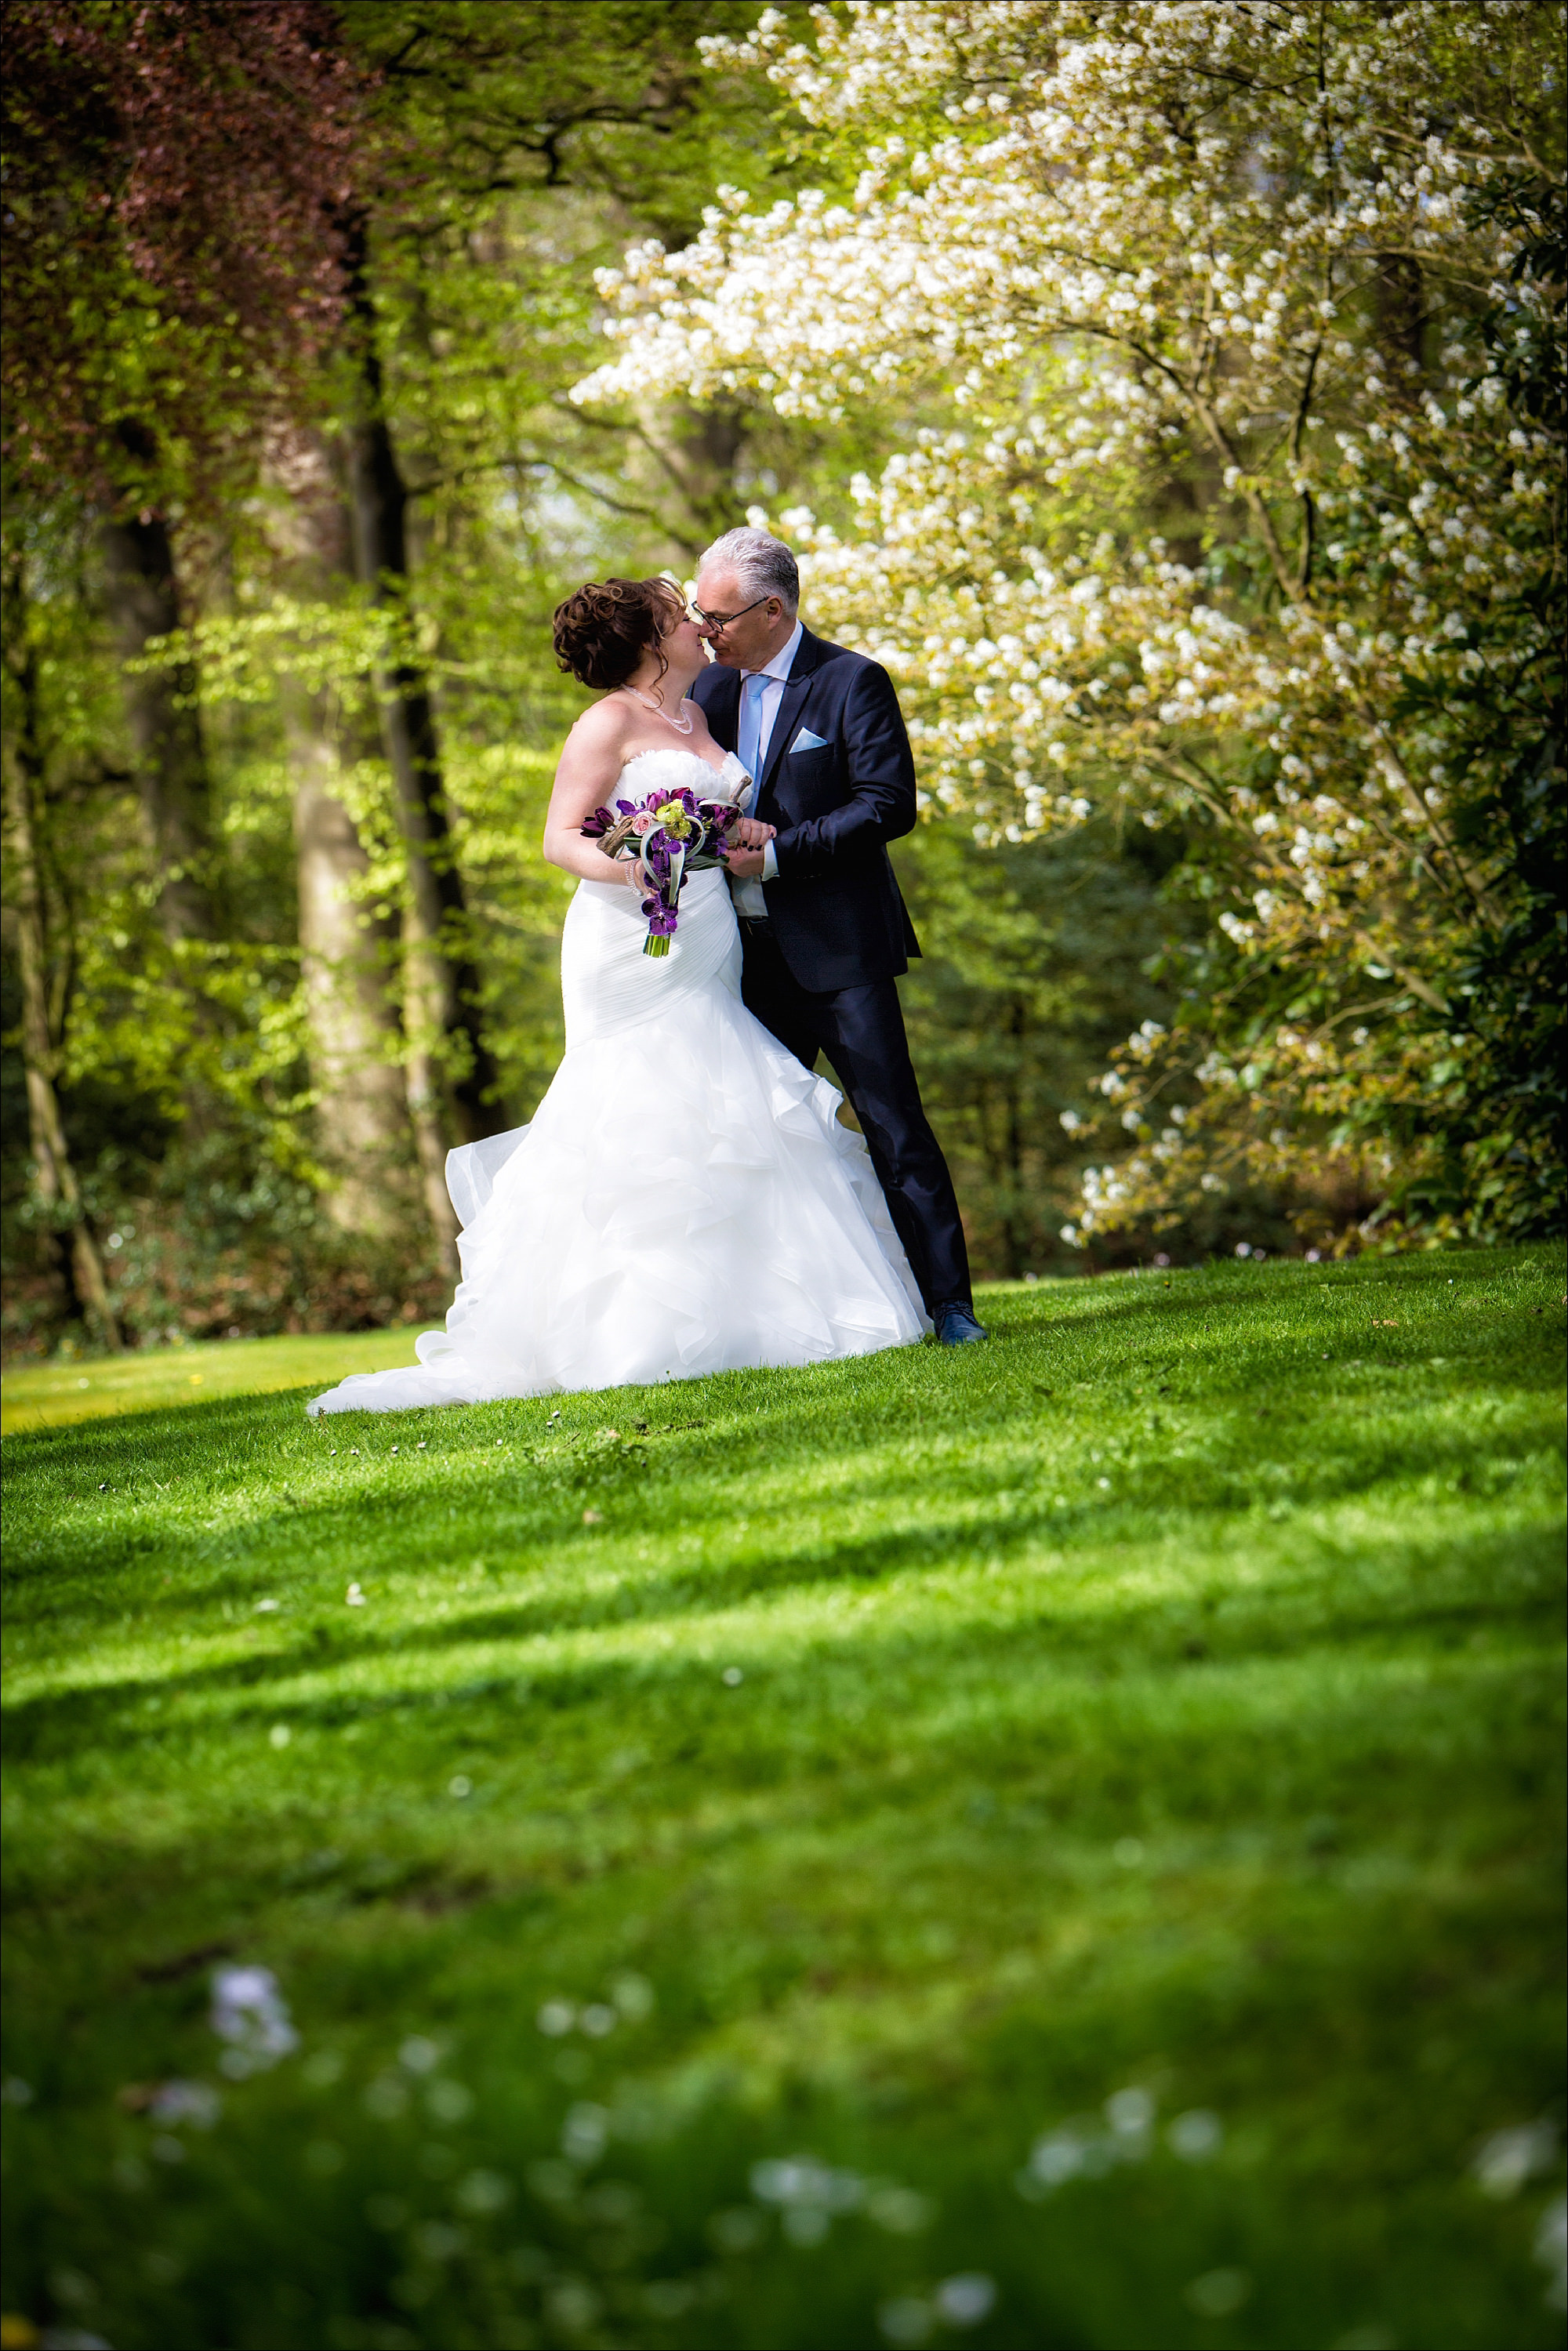 wedding photographer dublin david duignan photography real weddings Ireland 27